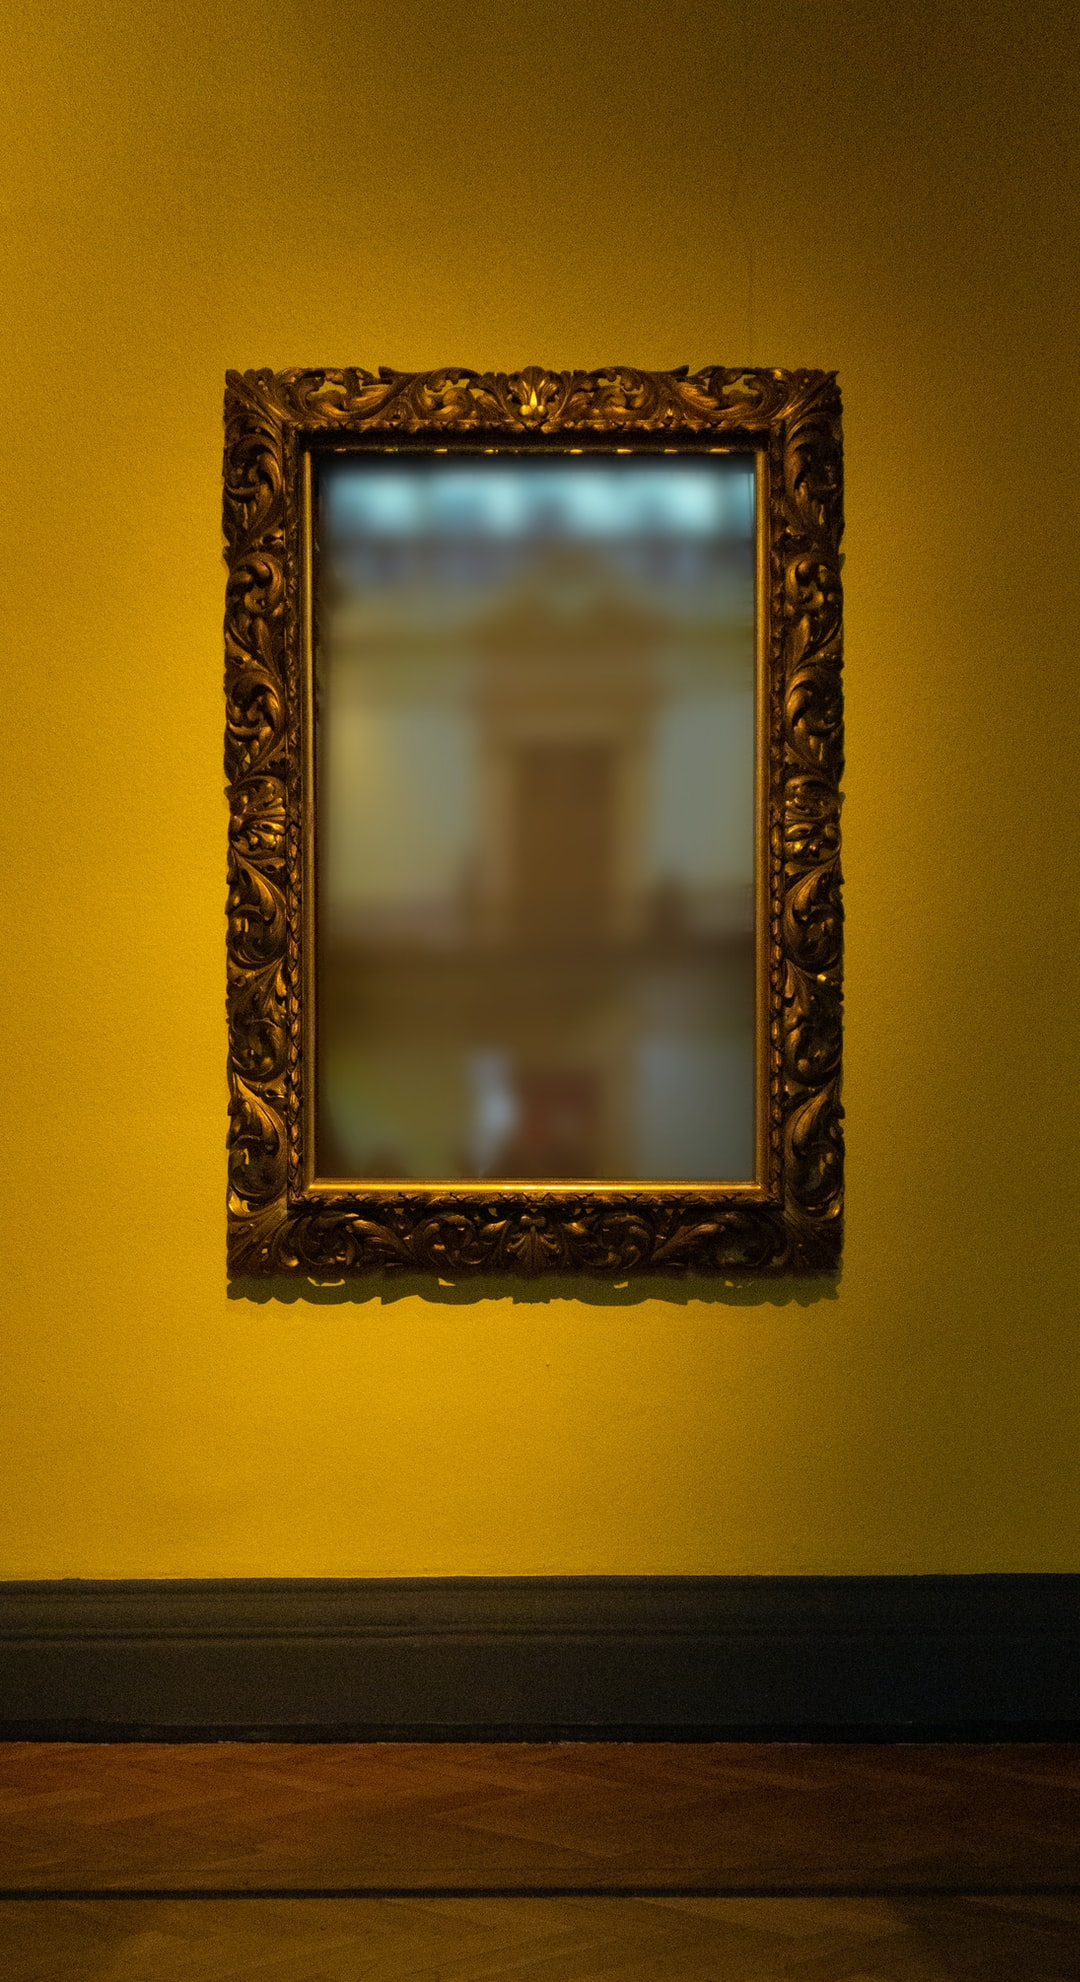 100 Picture Frame Pictures Hd Download Free Images On